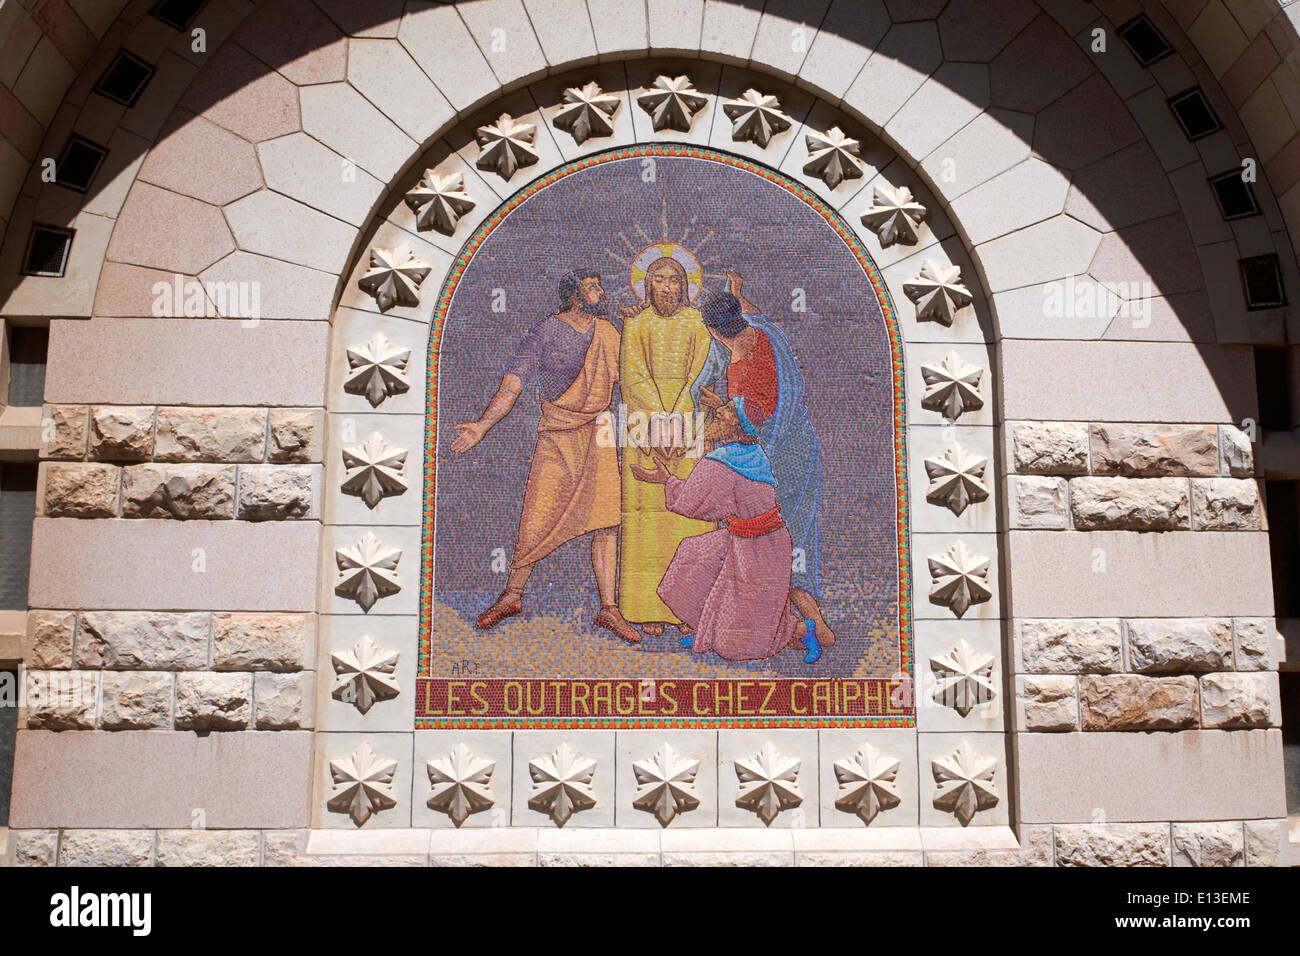 Les outrages chez Caiphe - Jesus is arrested - mosaic at The Church of Saint Peter in Gallicantu, Jerusalem, Holy Land - Stock Image